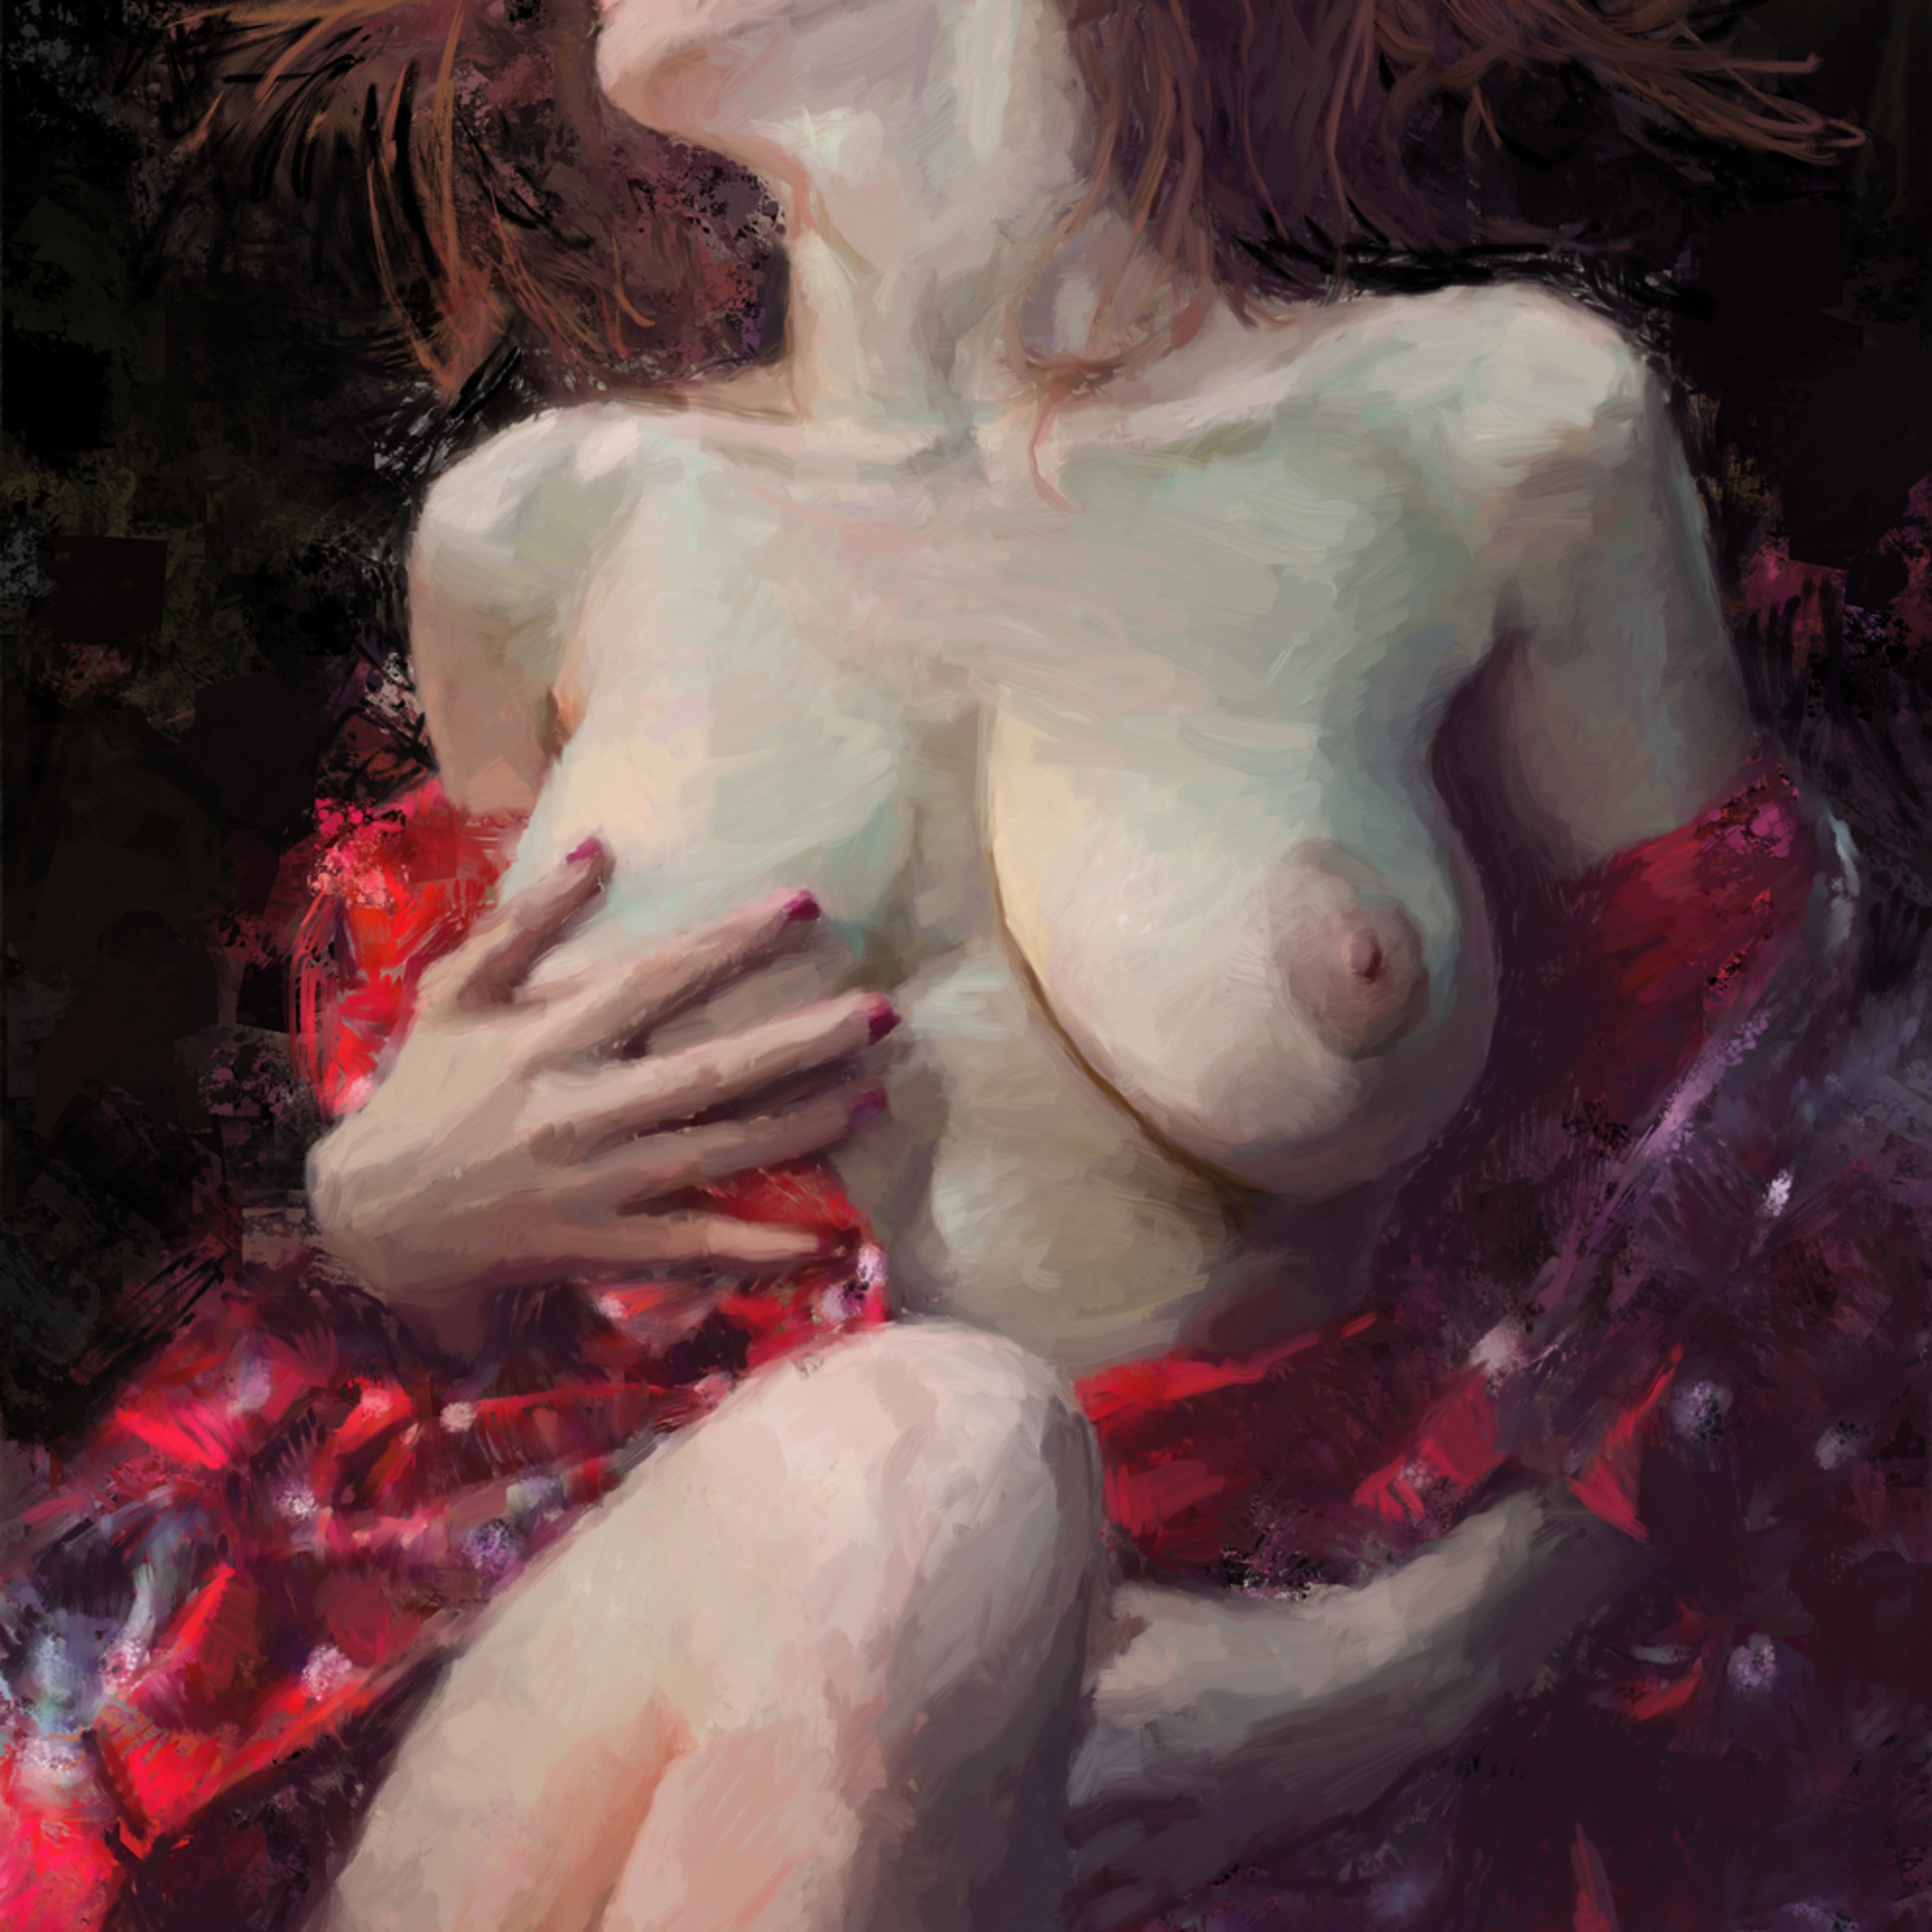 Nude in red robe 30x20dig vrp4na